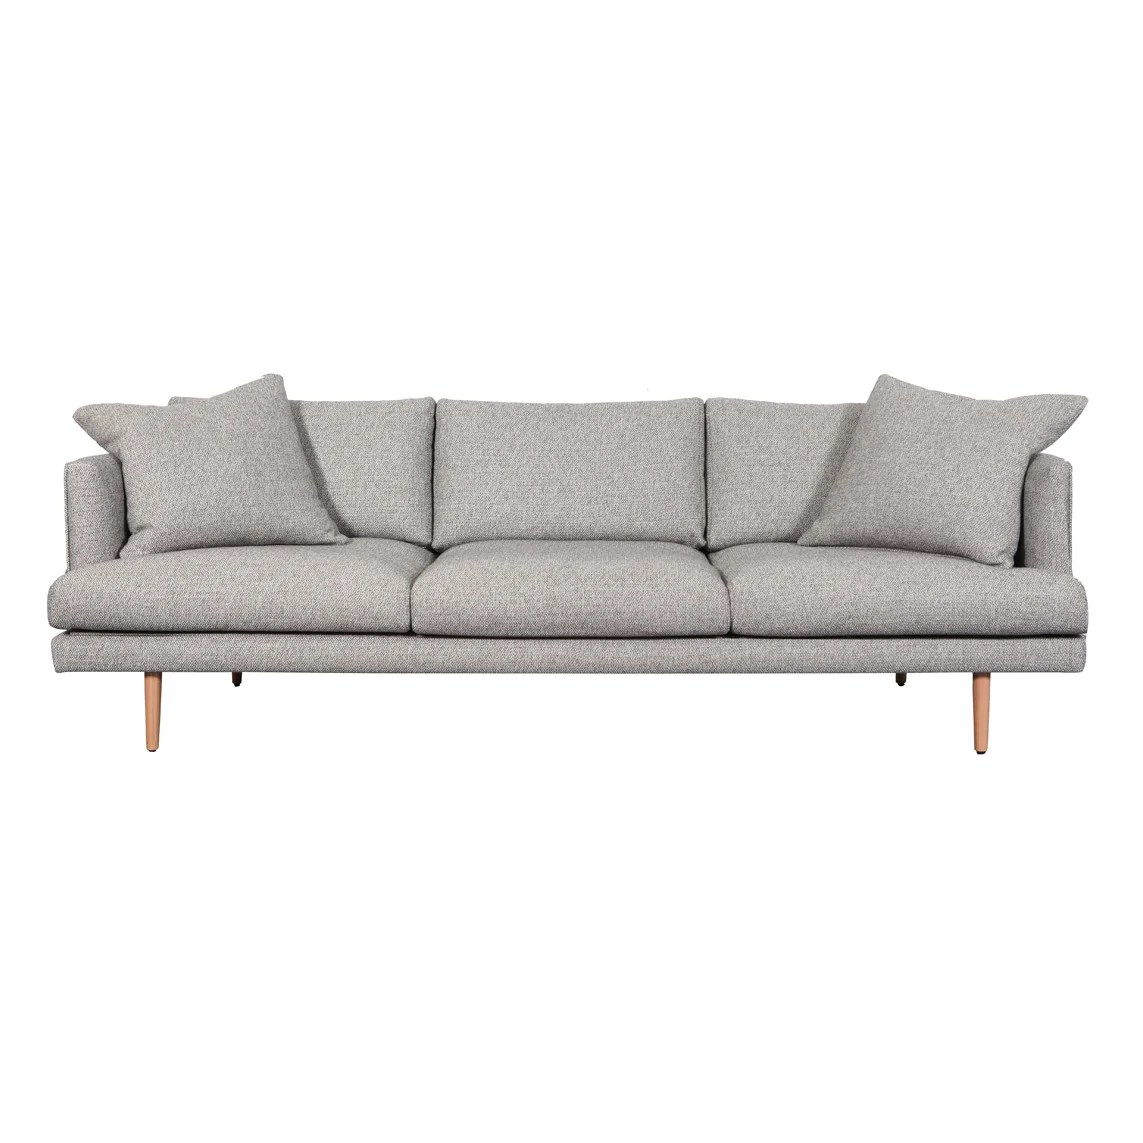 Made Sofa Shop Nordic Sofa Custom Made Furniture Shops Sofa Stores